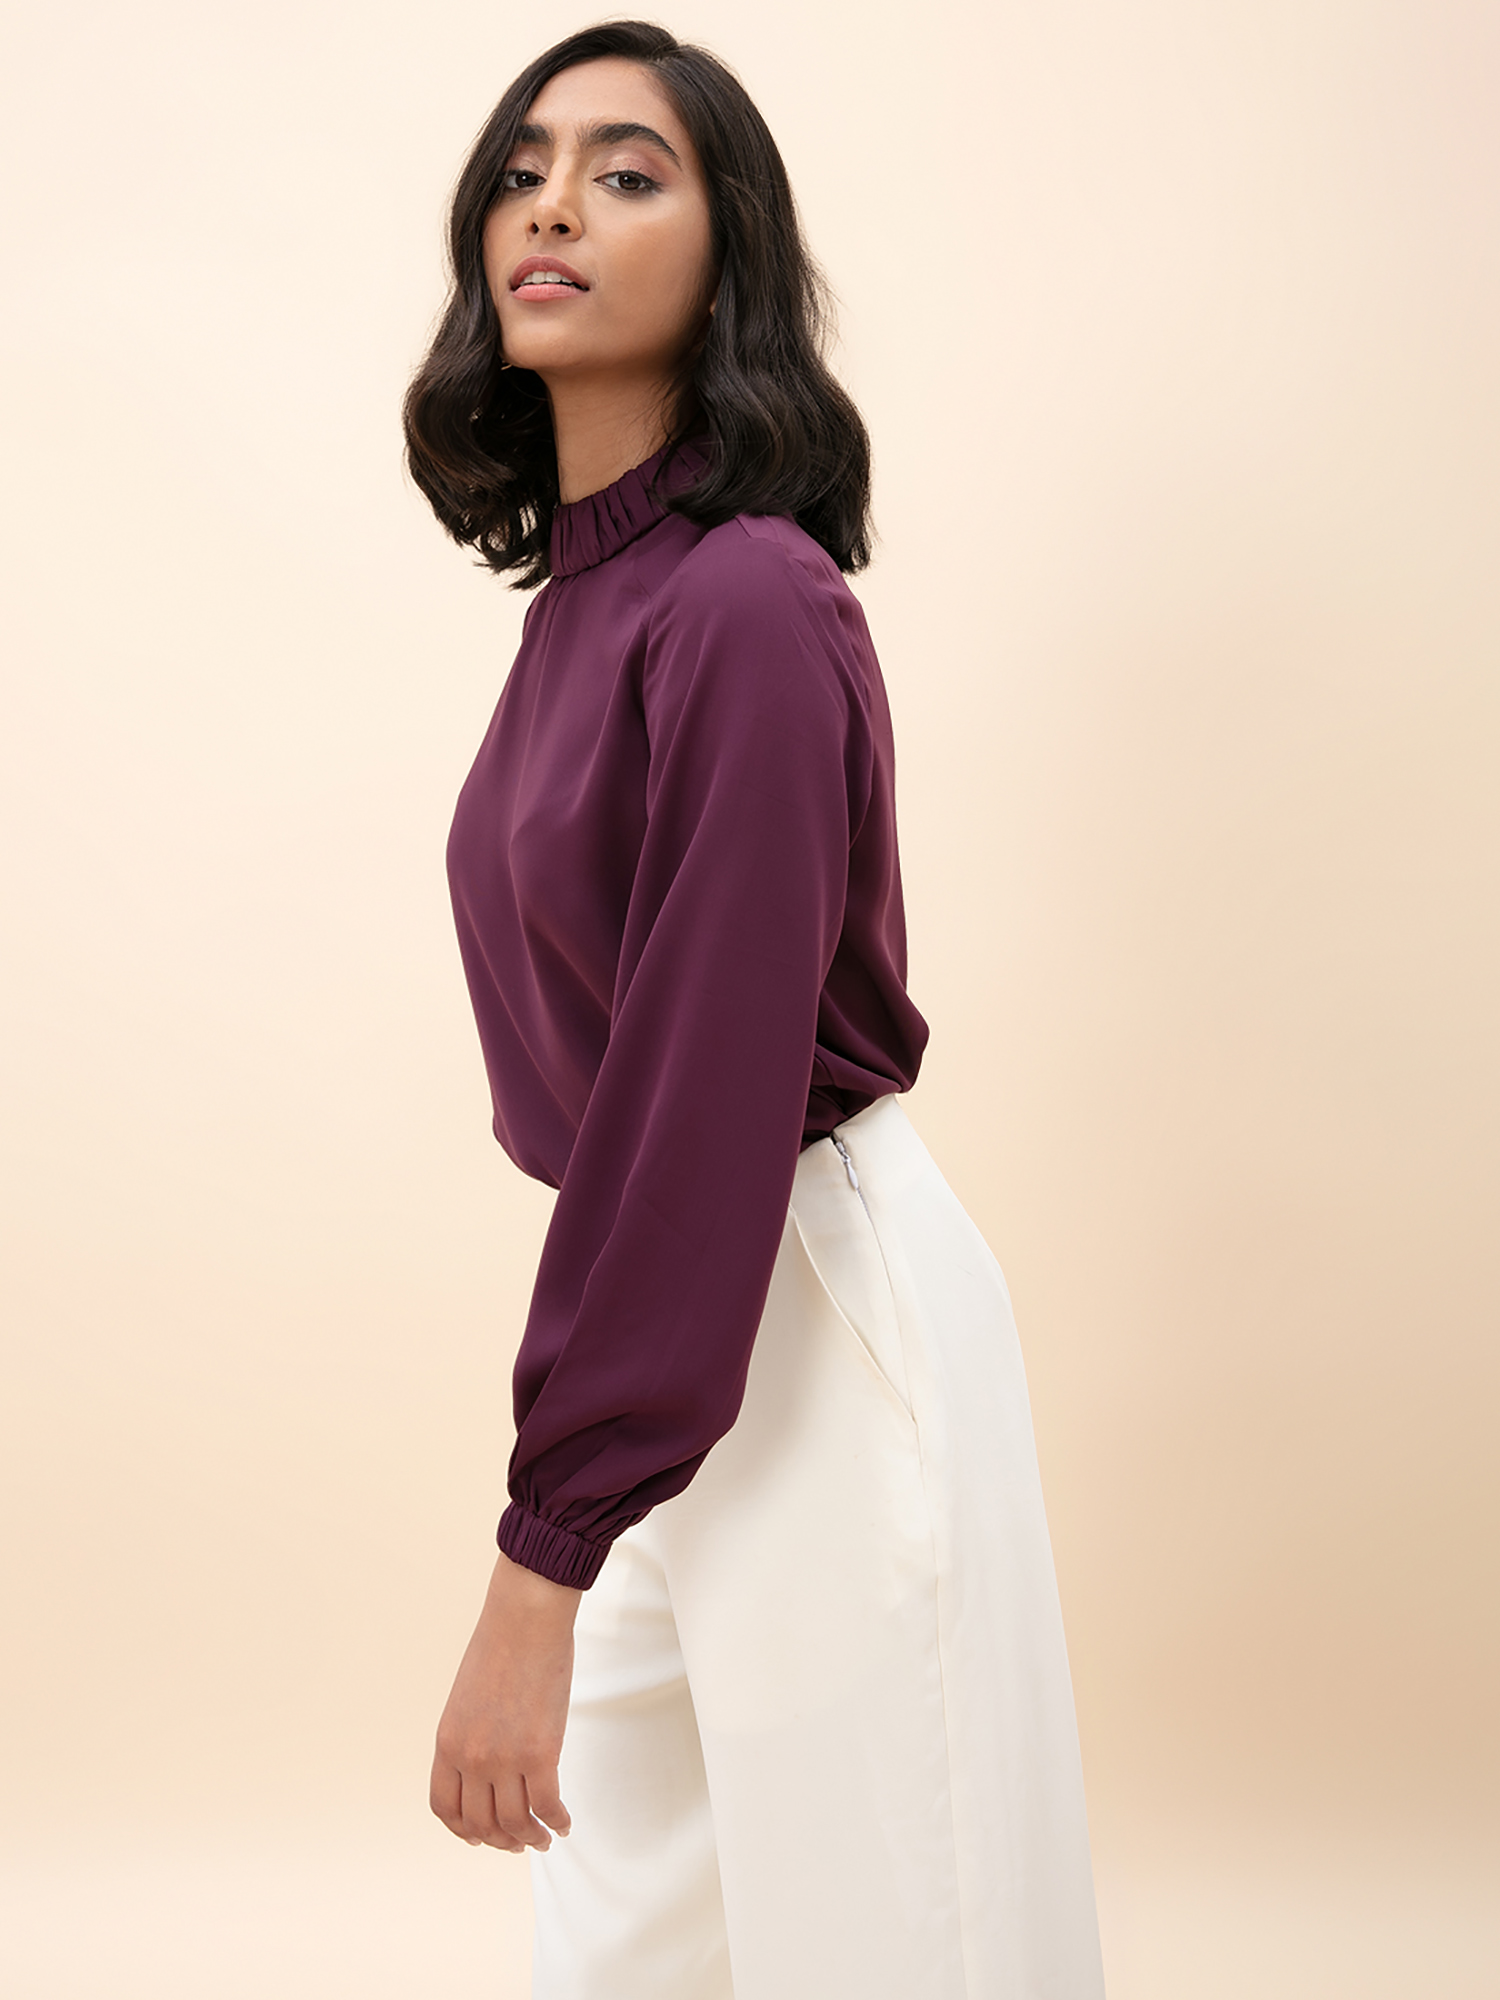 Tops-The Formidable Formal Purple Top1